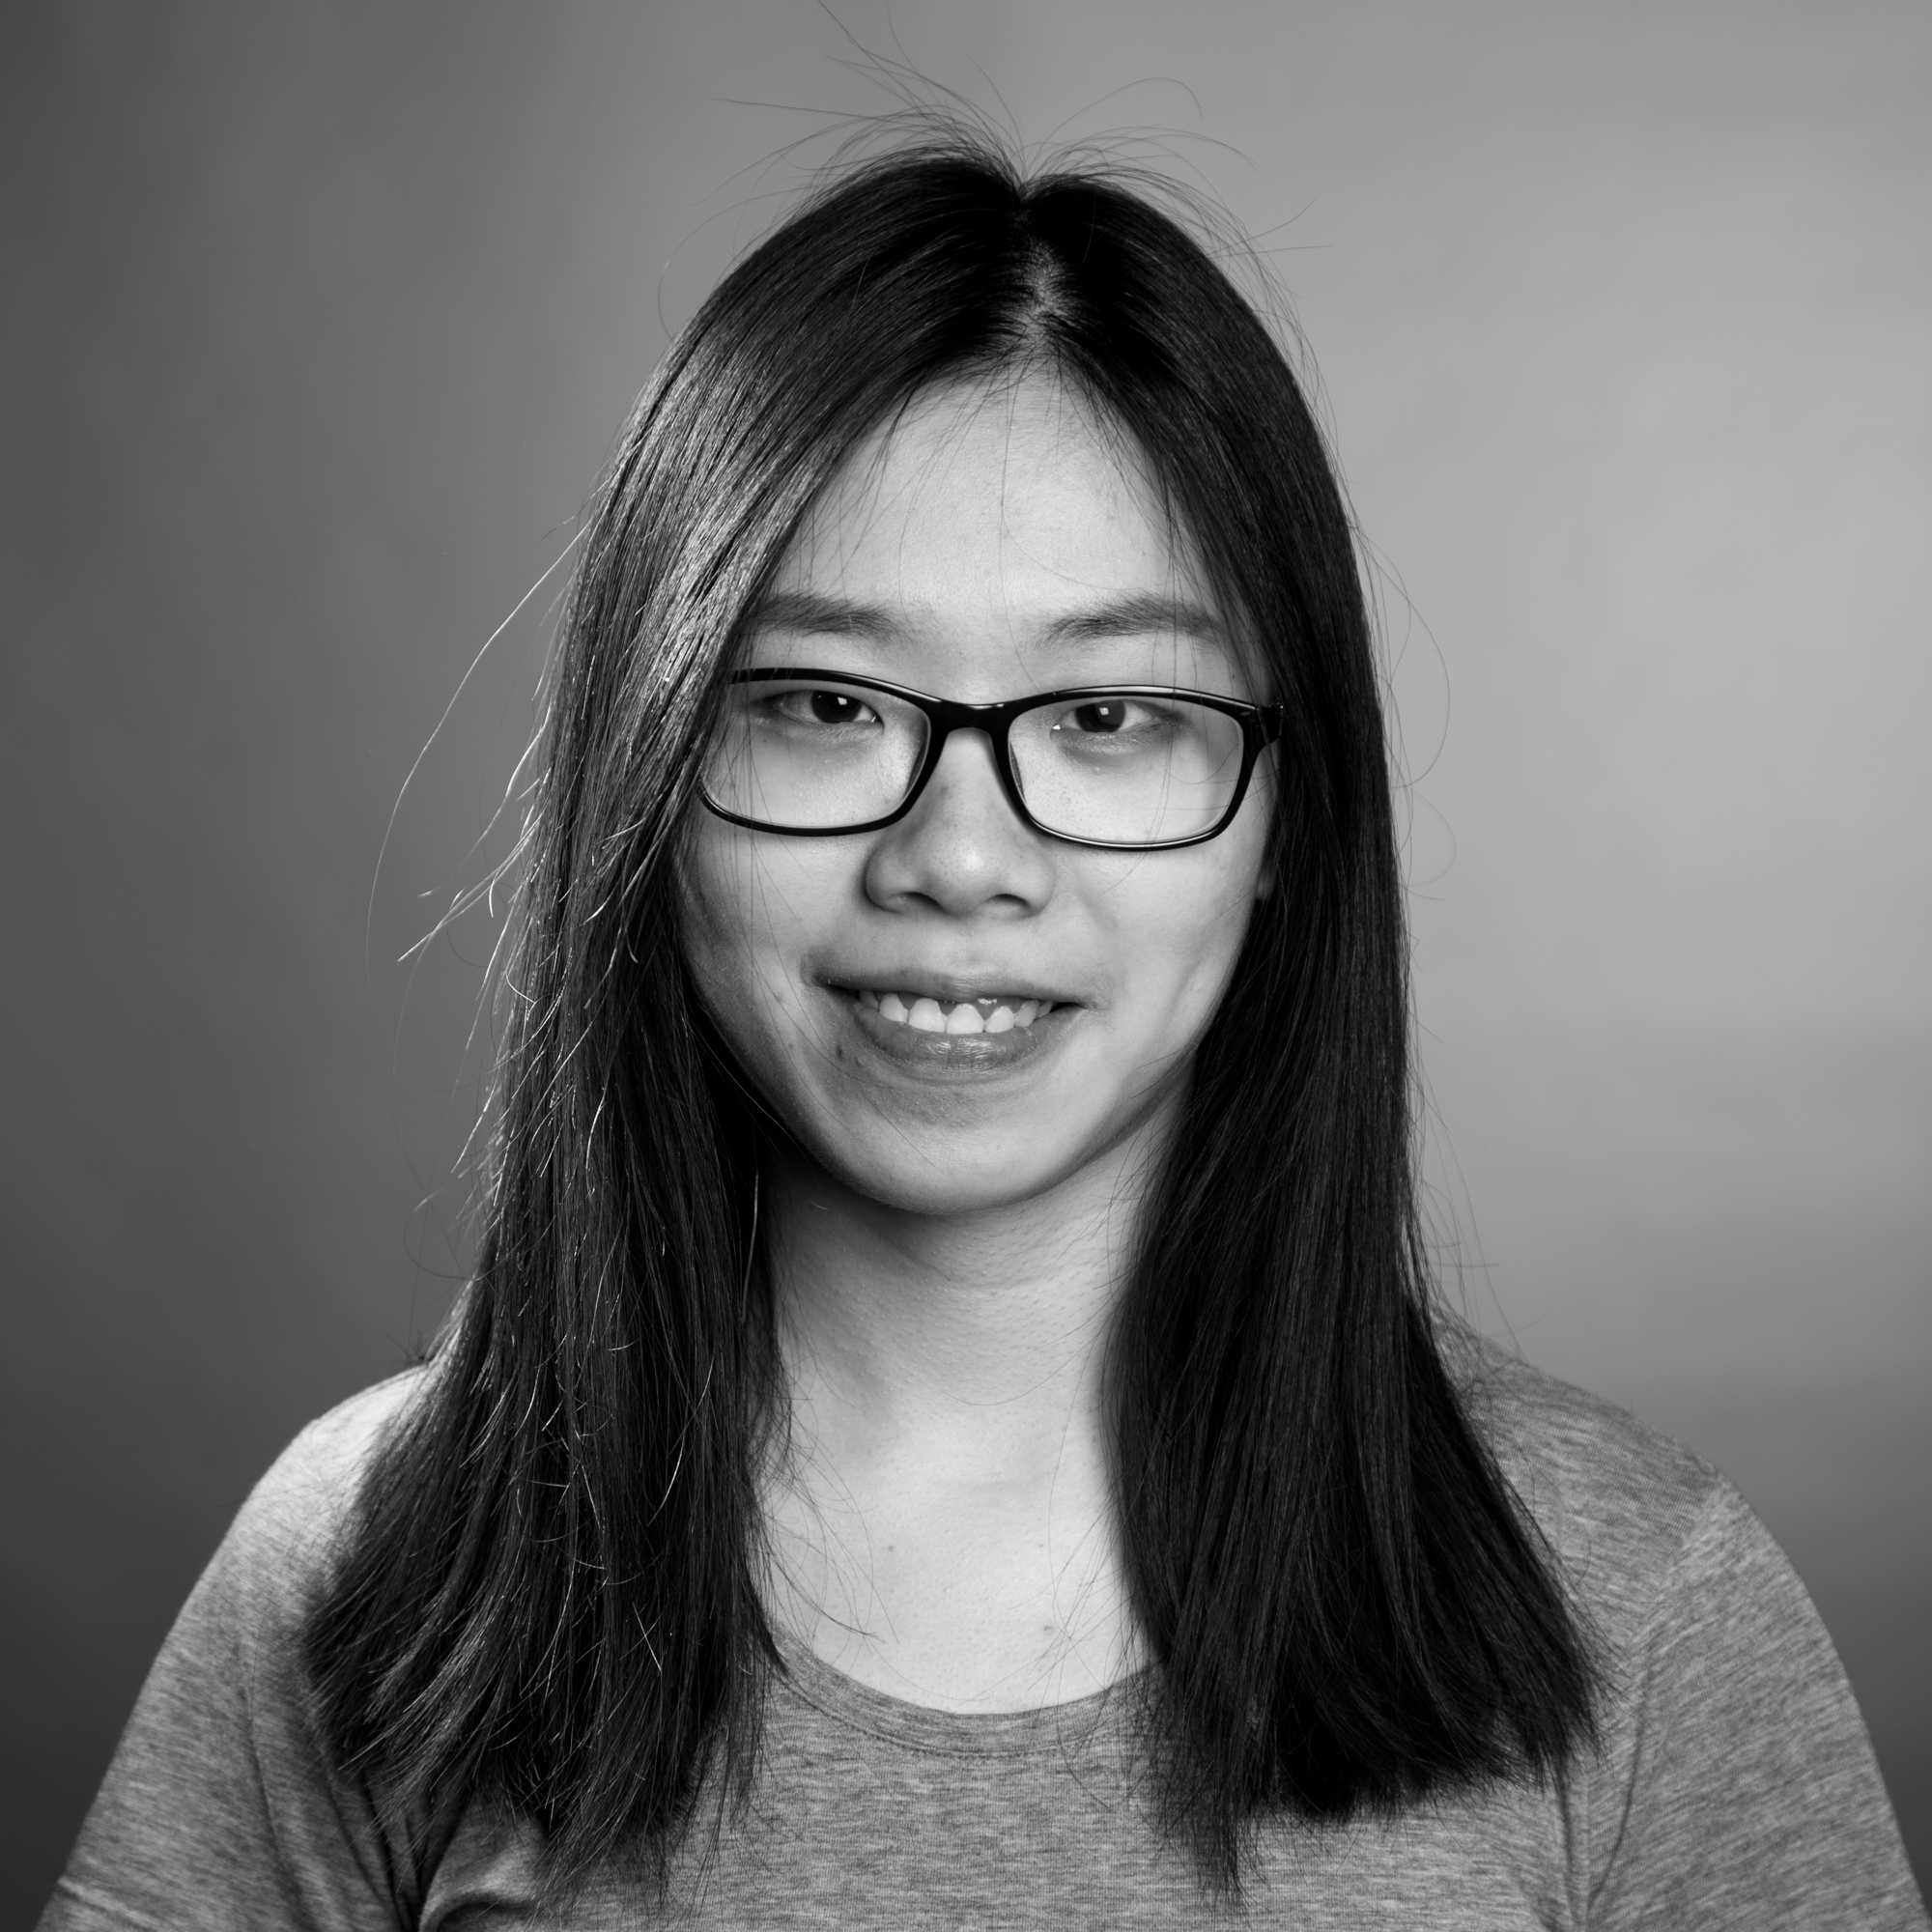 Zixin Xiong   Zixin has tried many times to get into the wonderland of design philosophy. She will send you a message if she succeeds. When you receive it, please reply to her as soon as possible. Thank you.  zxiong@risd.edu